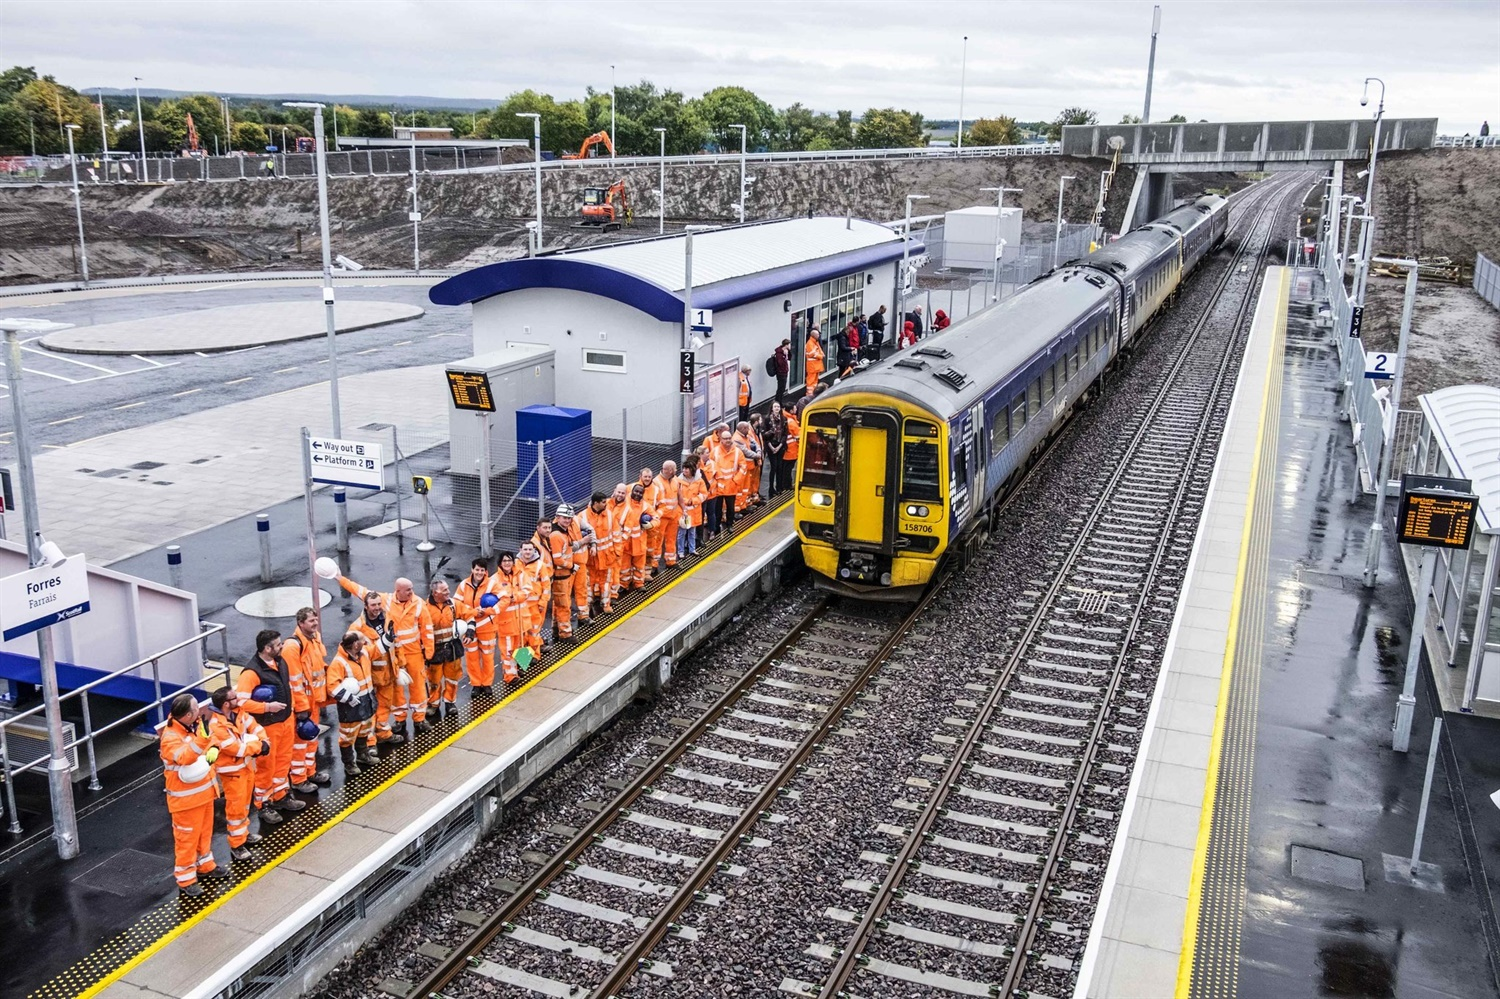 Forres station to 'transform' Scottish rail travel